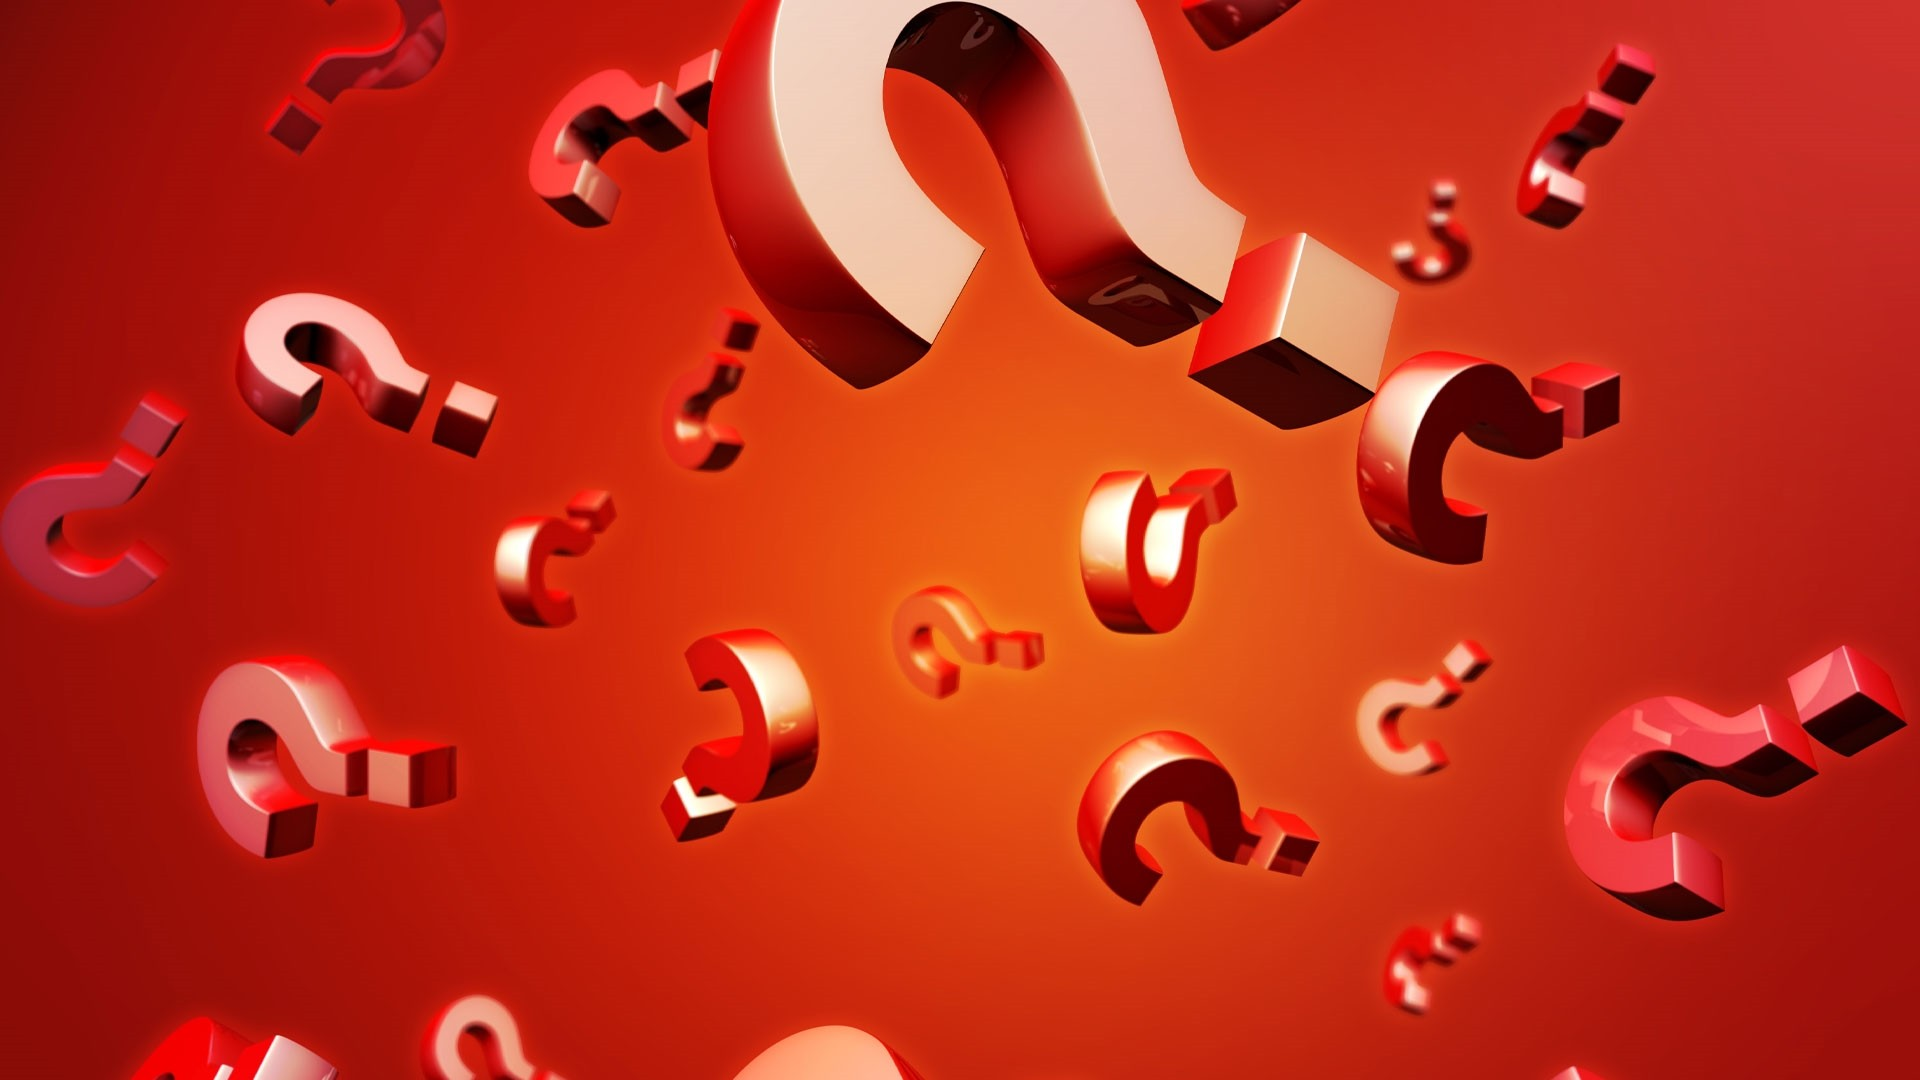 Question Mark Wallpaper theme